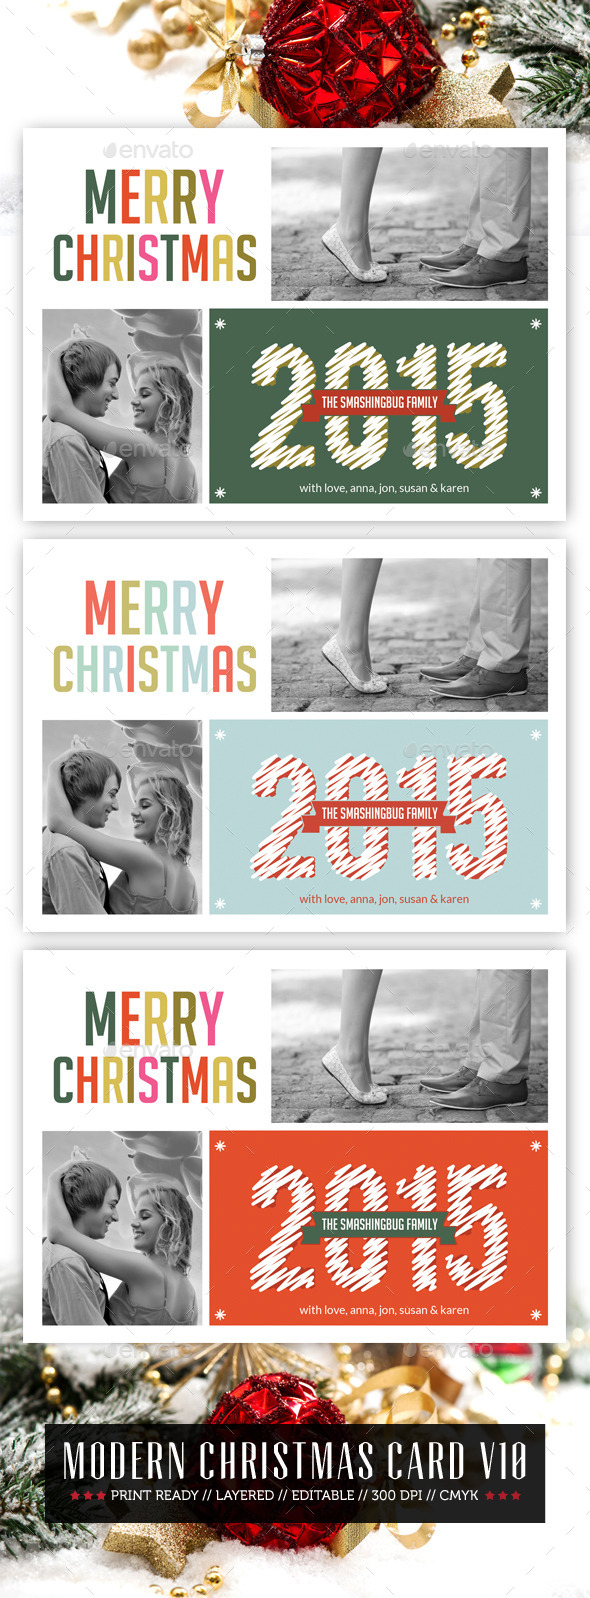 GraphicRiver Modern Christmas Card V10 9537235